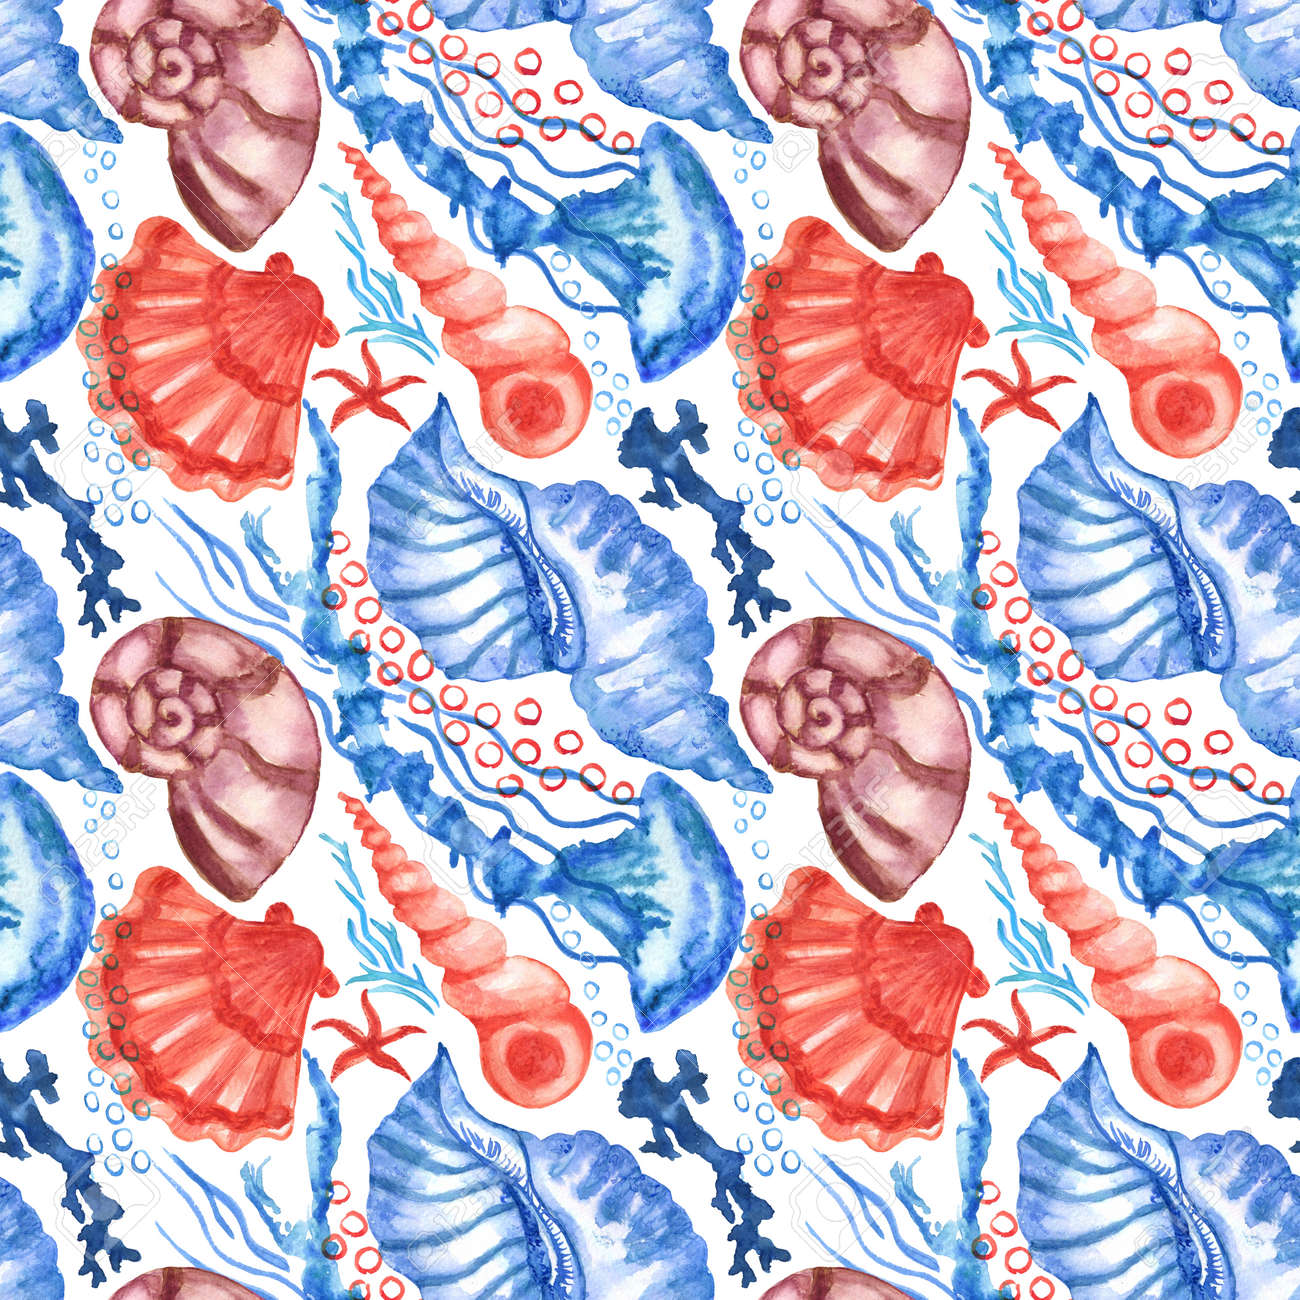 Watercolored seashells and starfishes seamless pattern. Illustration of shells and sea stars for for creating fabrics, textile, decoupage, wallpapers, print, gift wrapping paper, invitations, textile. - 166801058